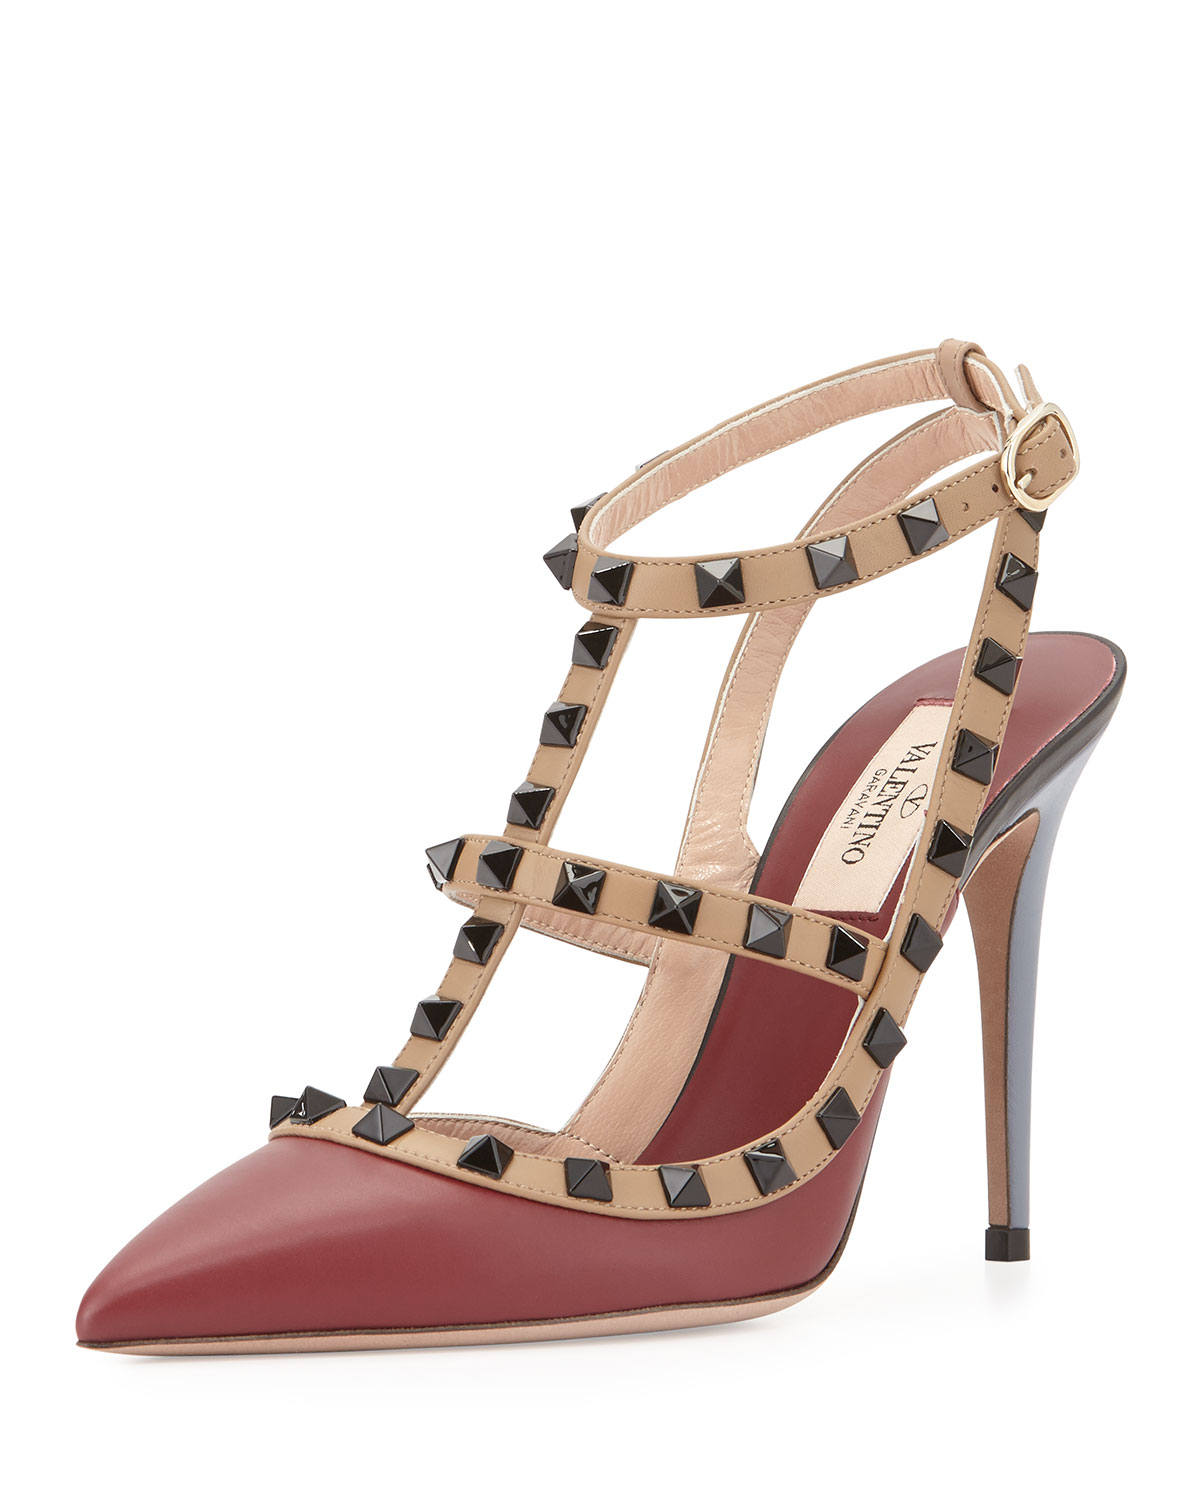 Lacquered Rockstud Leather Pump, Red, Size: 35.5B/5.5B - Valentino